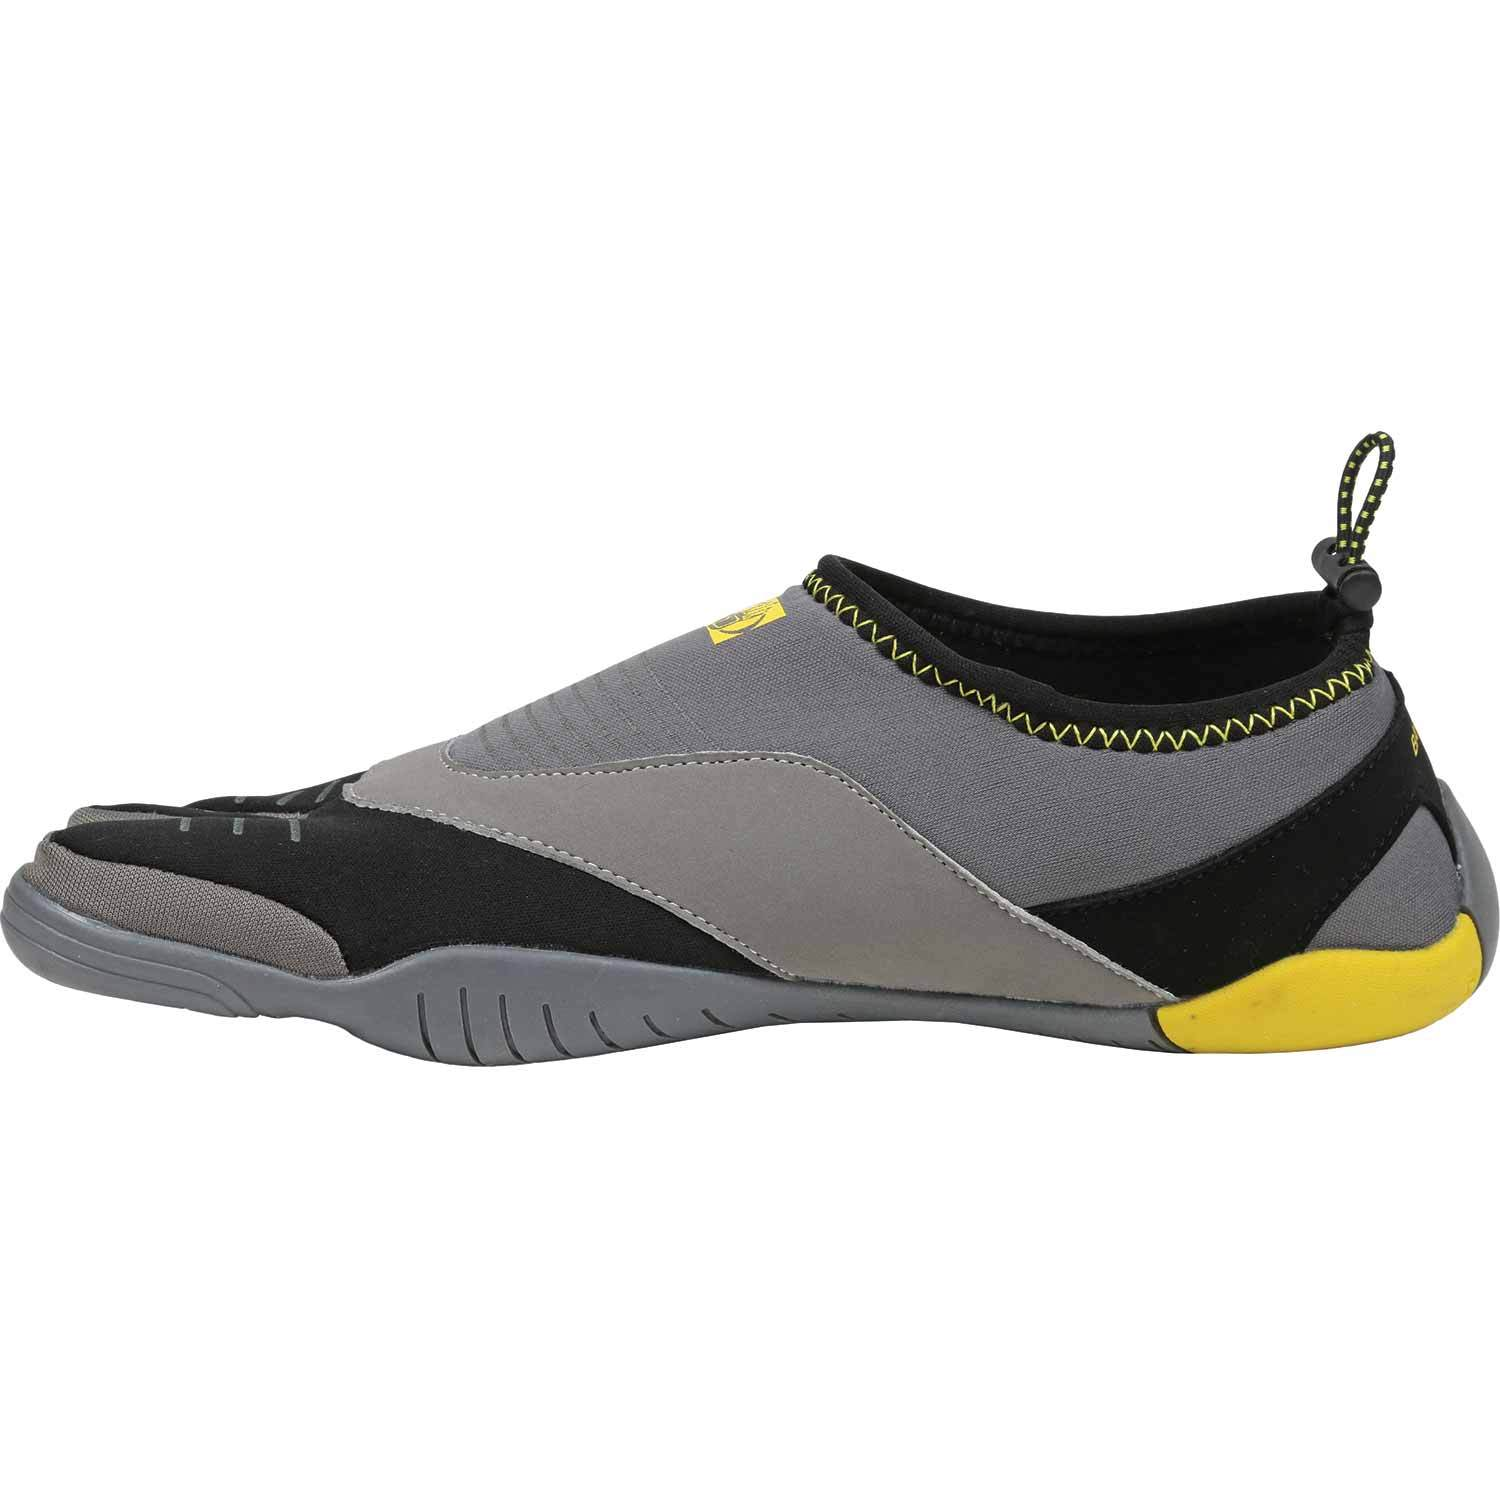 fc841823141f BODY GLOVE Men s 3T Barefoot Max Shoe